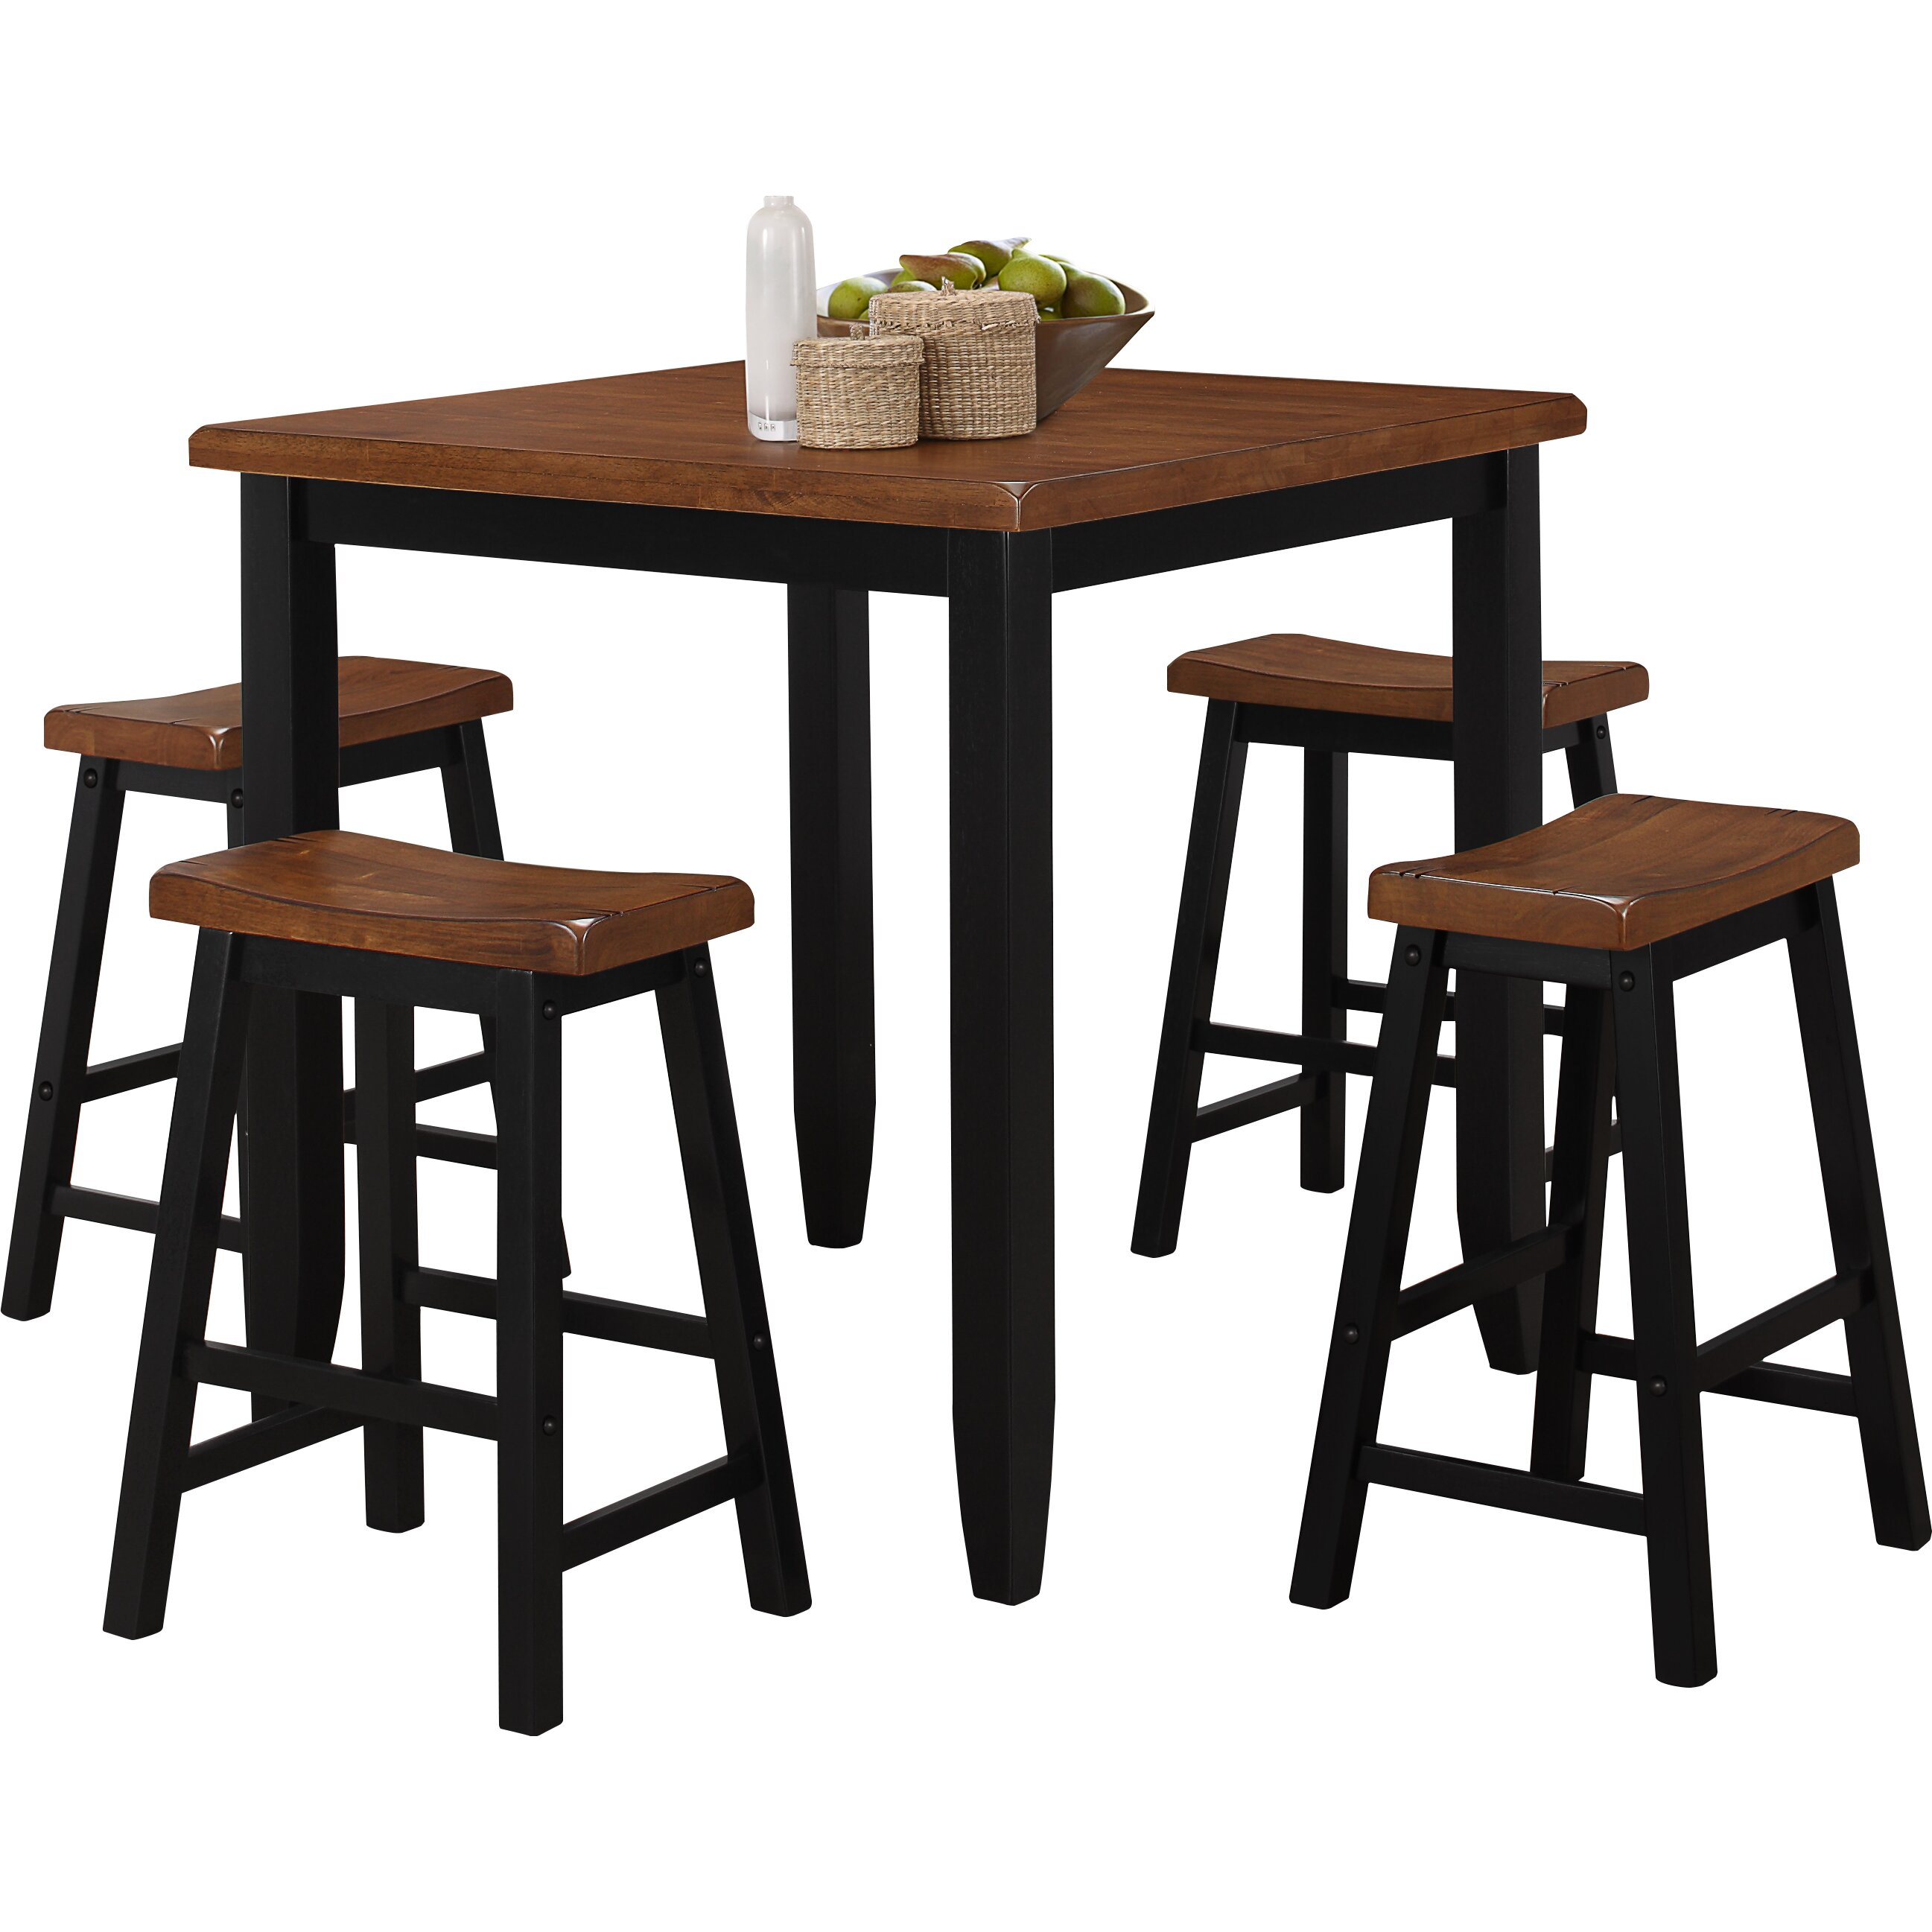 Darby Home Co Ruggerio 5 Piece Counter Height Pub Table